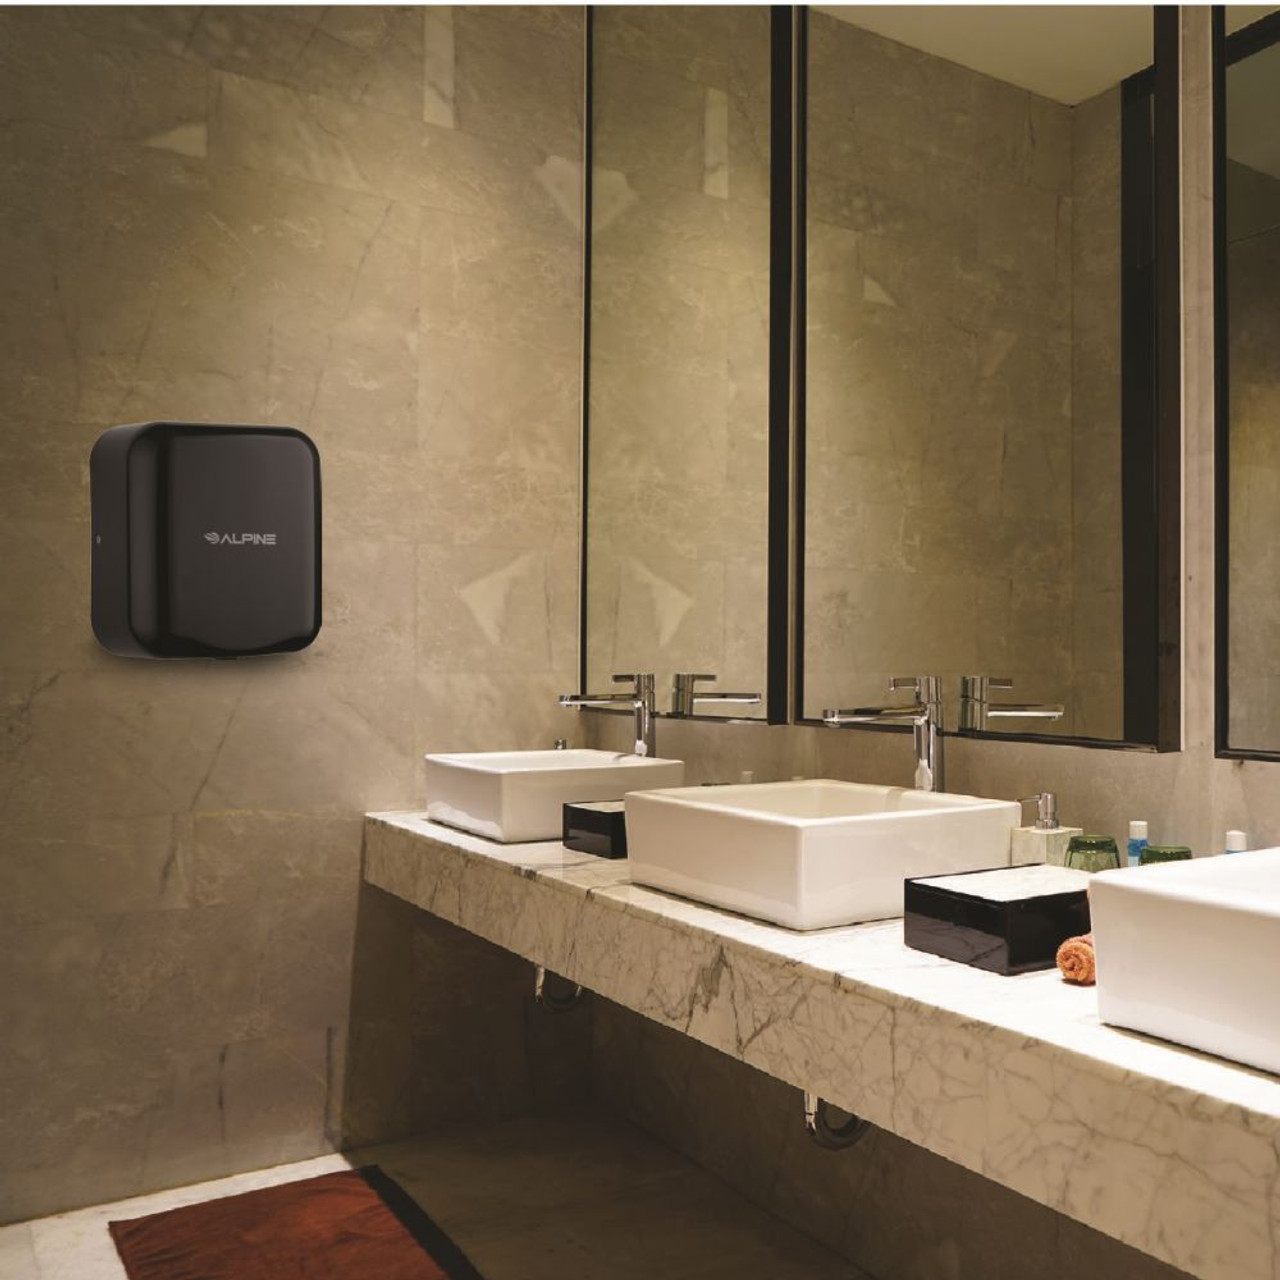 The Hemlock Hand Dryer comes in multiple colors such as black.